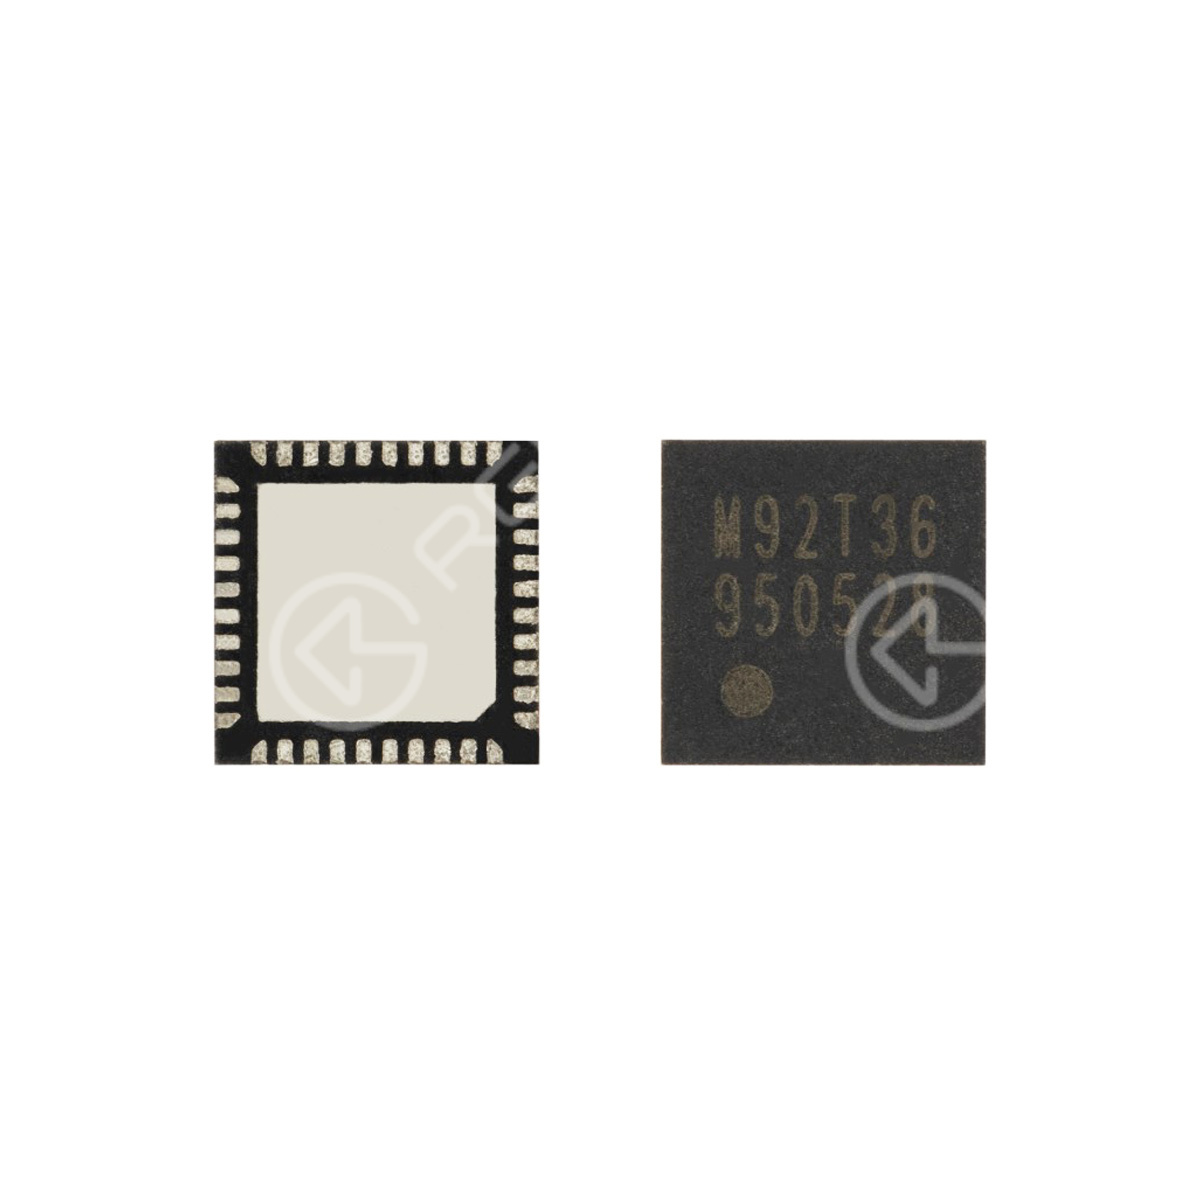 HDMI IC Video Output Chip M92T17 For Nintendo Switch